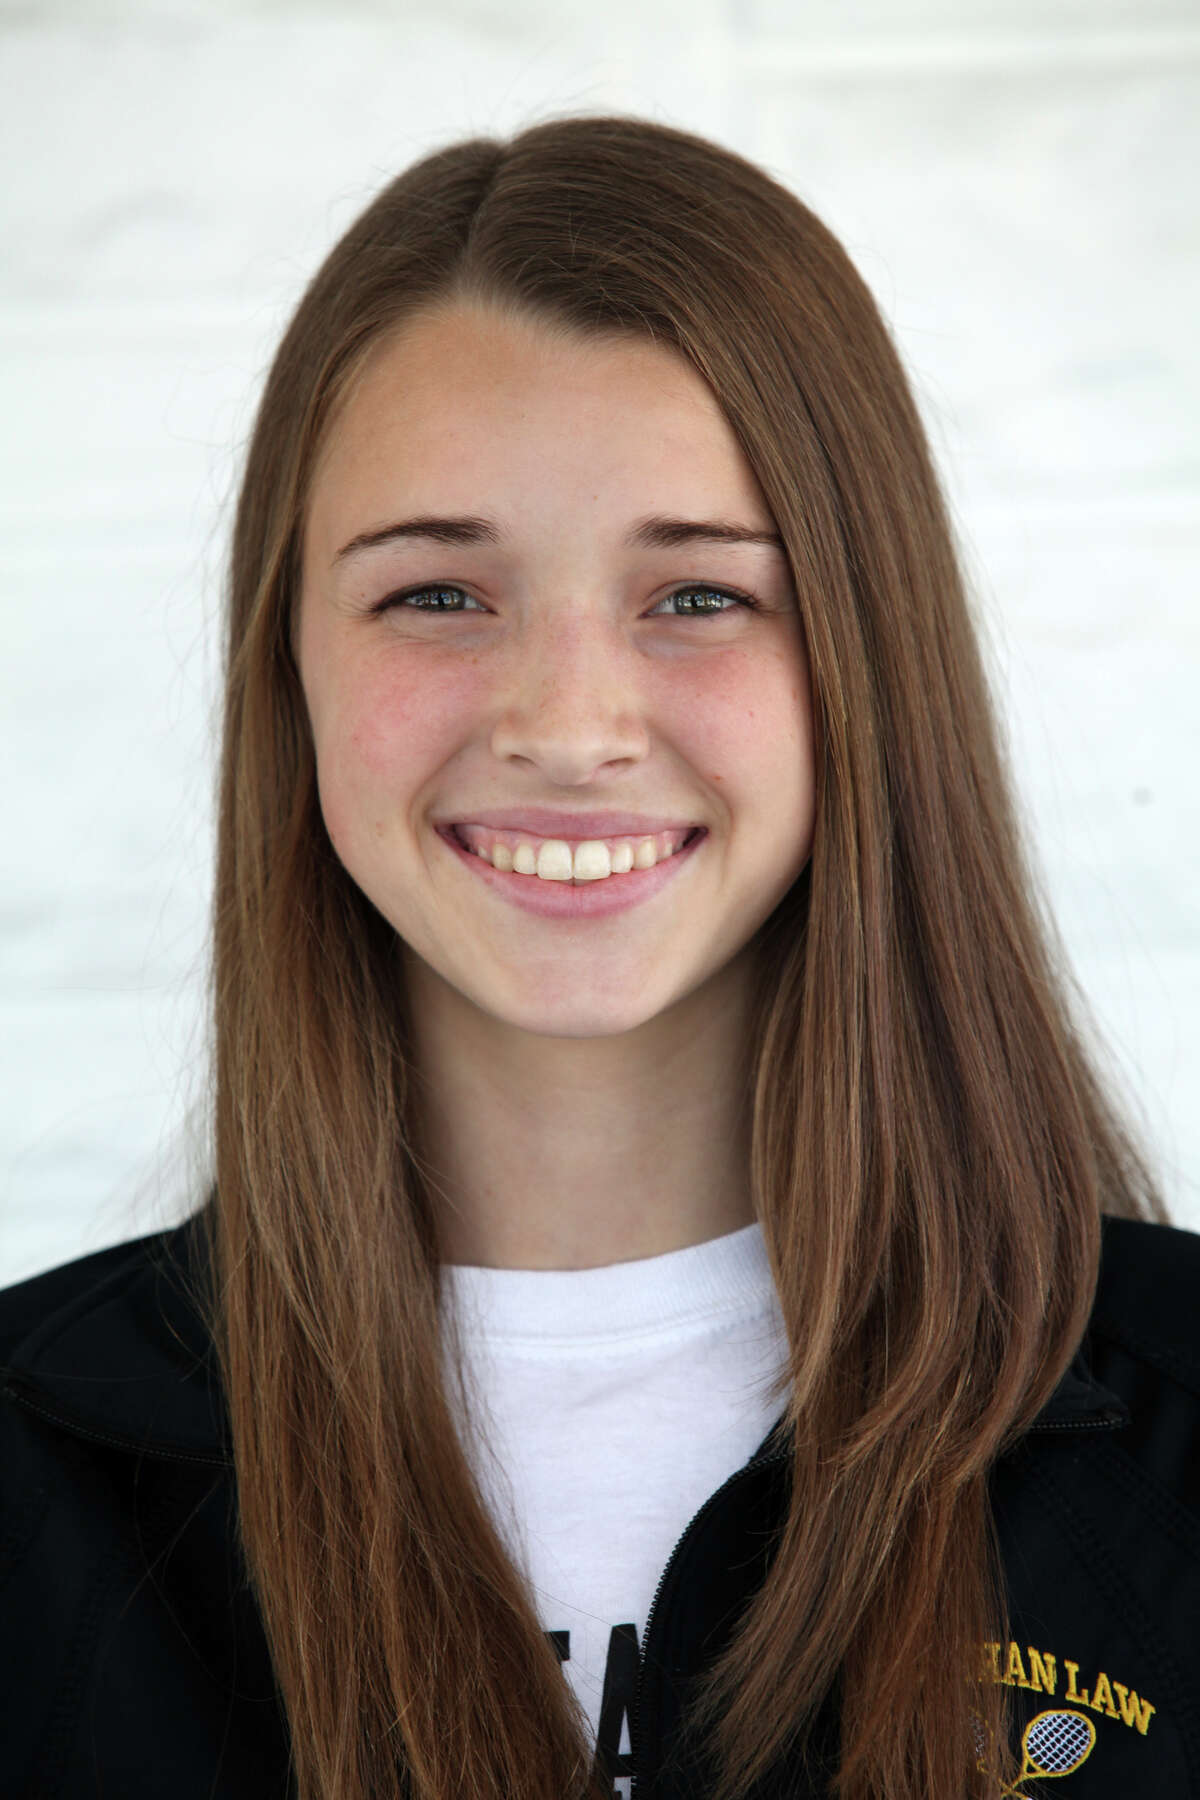 Law high school tennis player Lianne Maynard is the CT Post female athlete of the week Monday, April 22, 2013.